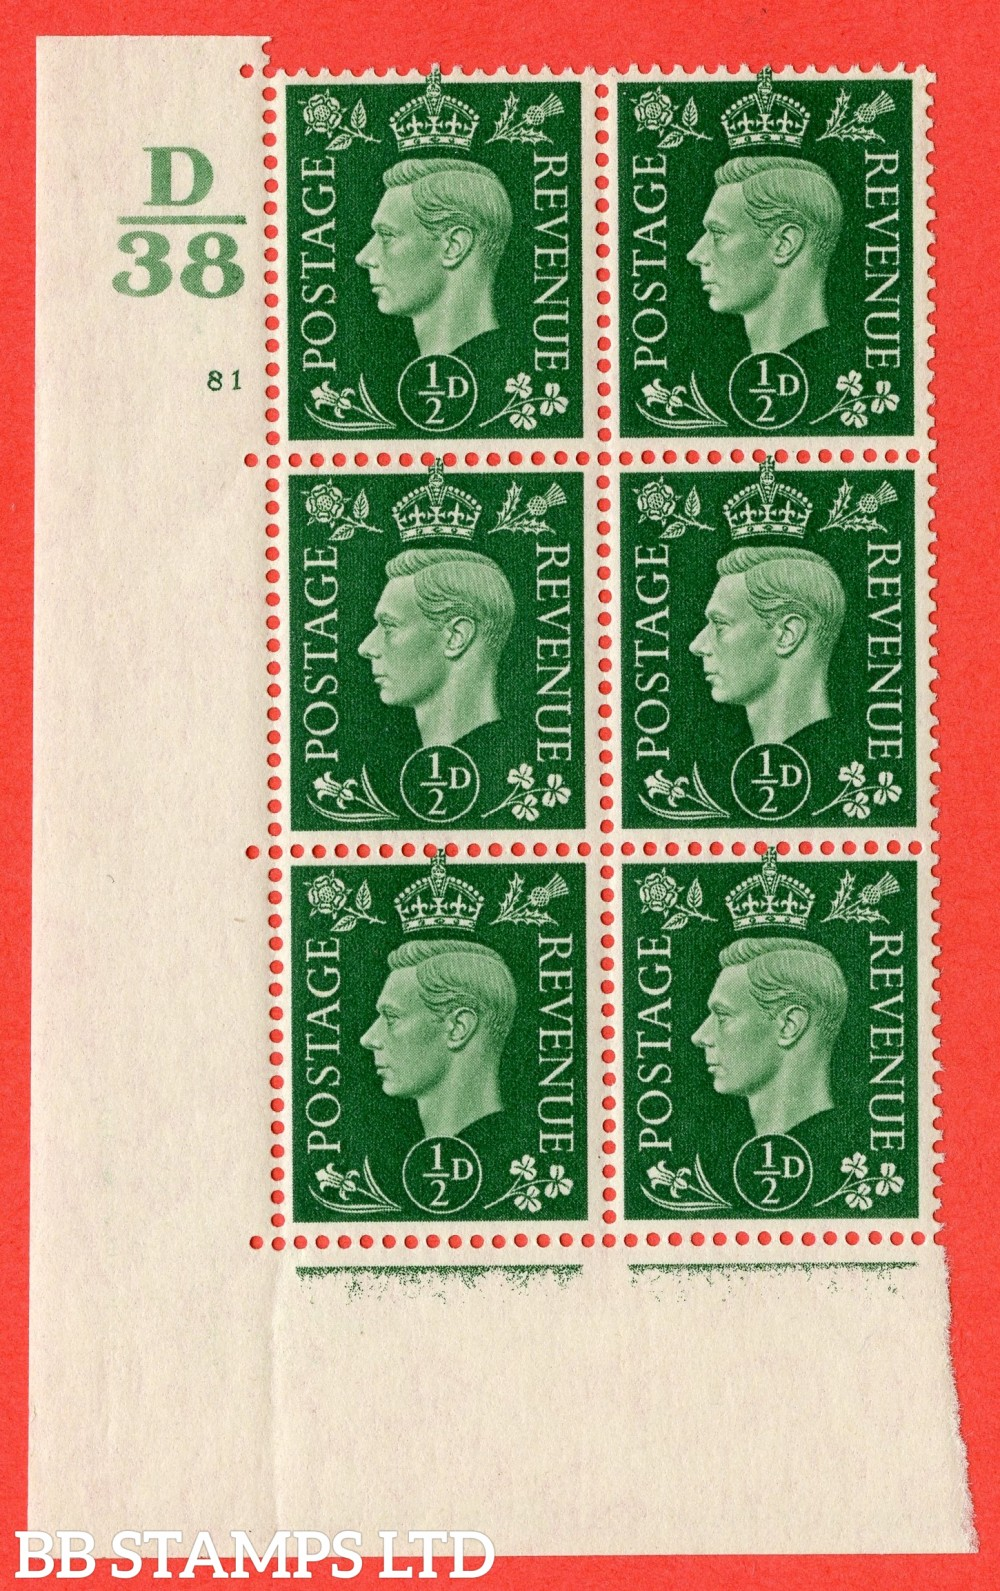 "SG. 462. Q1. ½d Green. A superb UNMOUNTED MINT "" Control D38 cylinder 81 no dot "" block of 6 with perf type 5 E/I with marginal rule."